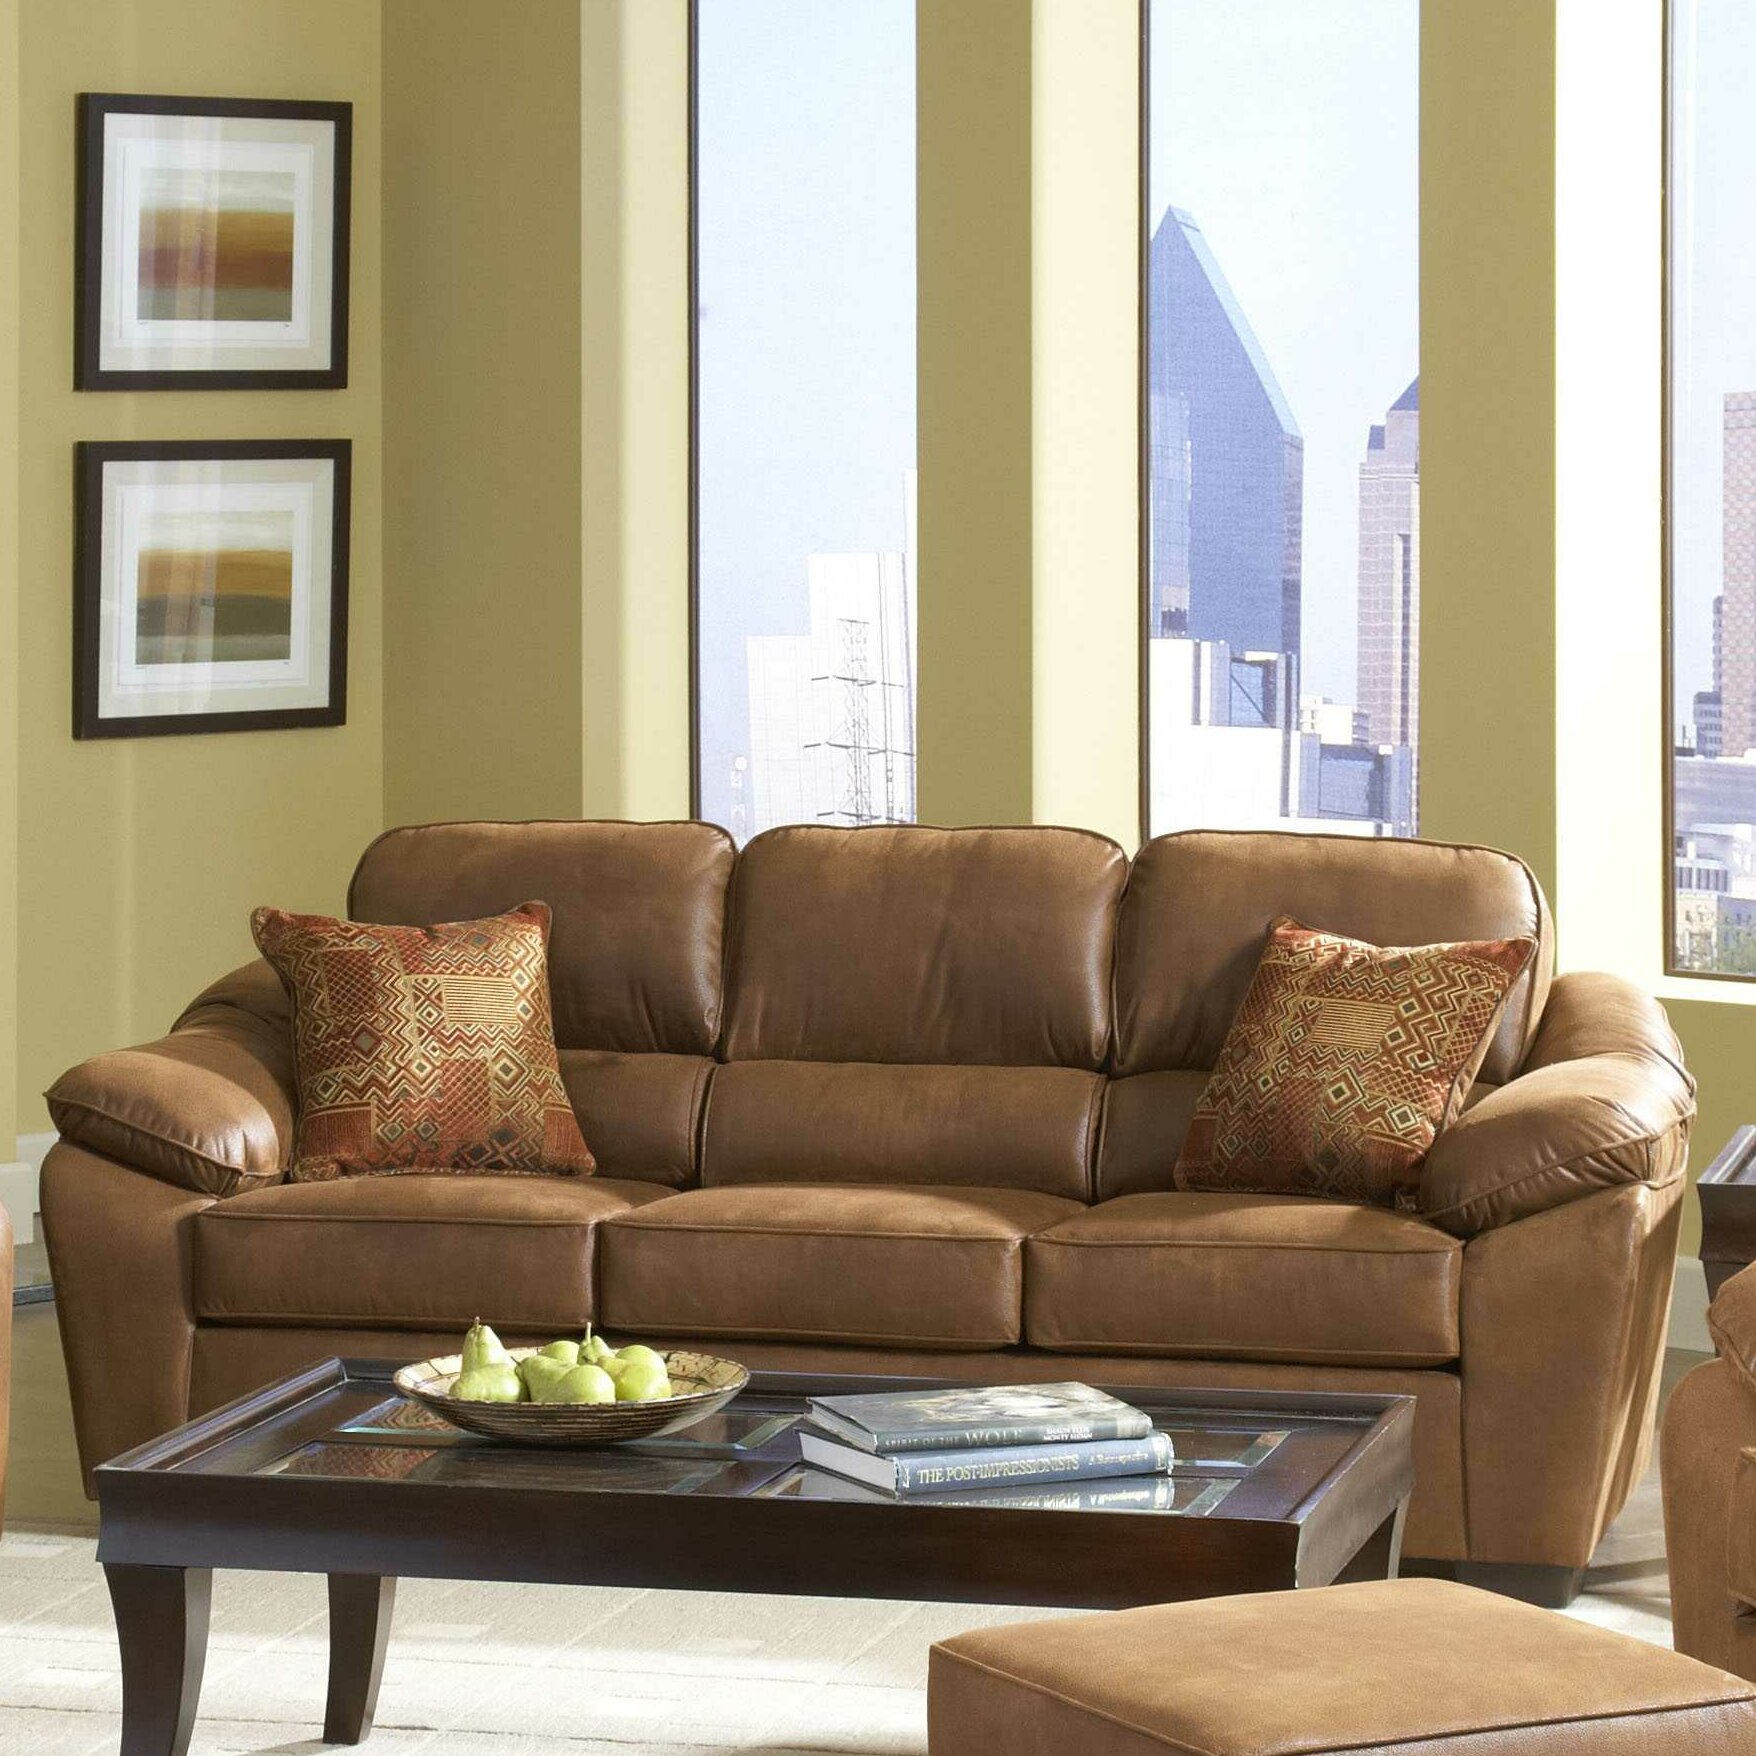 Serta Upholstery Living Room Collection & Reviews  Wayfair. Living Room Corner Units. Decorative Shelves For Living Room. Duck Egg Accessories Living Room. Design Your Own Living Room Layout. Furniture Placement In Living Room. Low Storage Units Living Room. Best Wireless Speakers For Living Room. Hippie Living Room